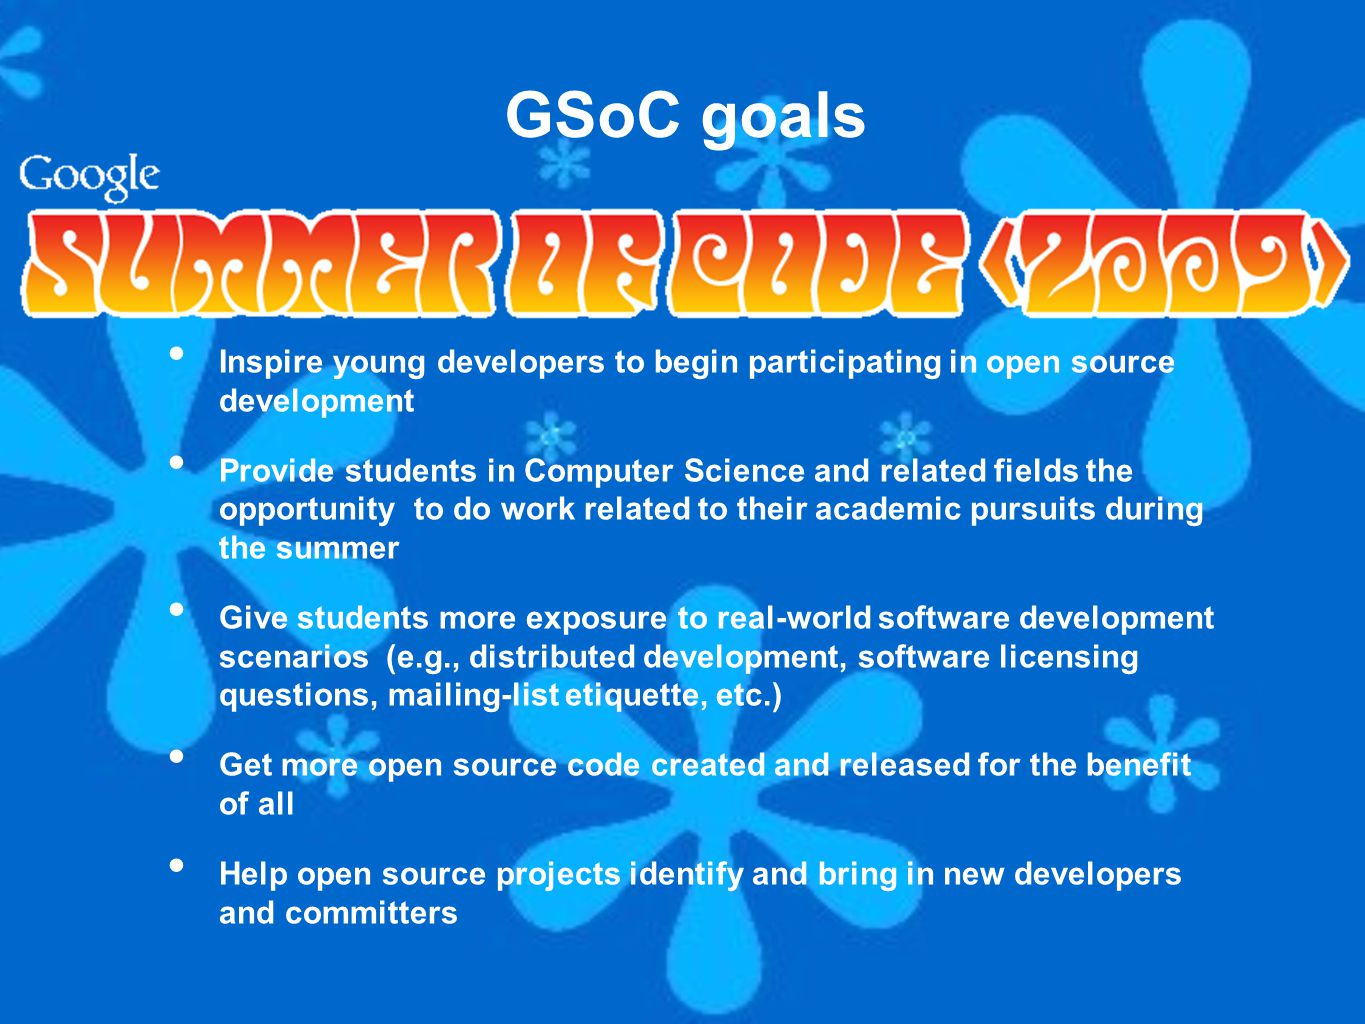 Inspire young developers to begin participating in open source development Provide students in Computer Science and related fields the opportunity to do work related to their academic pursuits during the summer Give students more exposure to real-world software development scenarios (e.g., distributed development, software licensing questions, mailing-list etiquette, etc.) Get more open source code created and released for the benefit of all Help open source projects identify and bring in new developers and committers GSoC goals